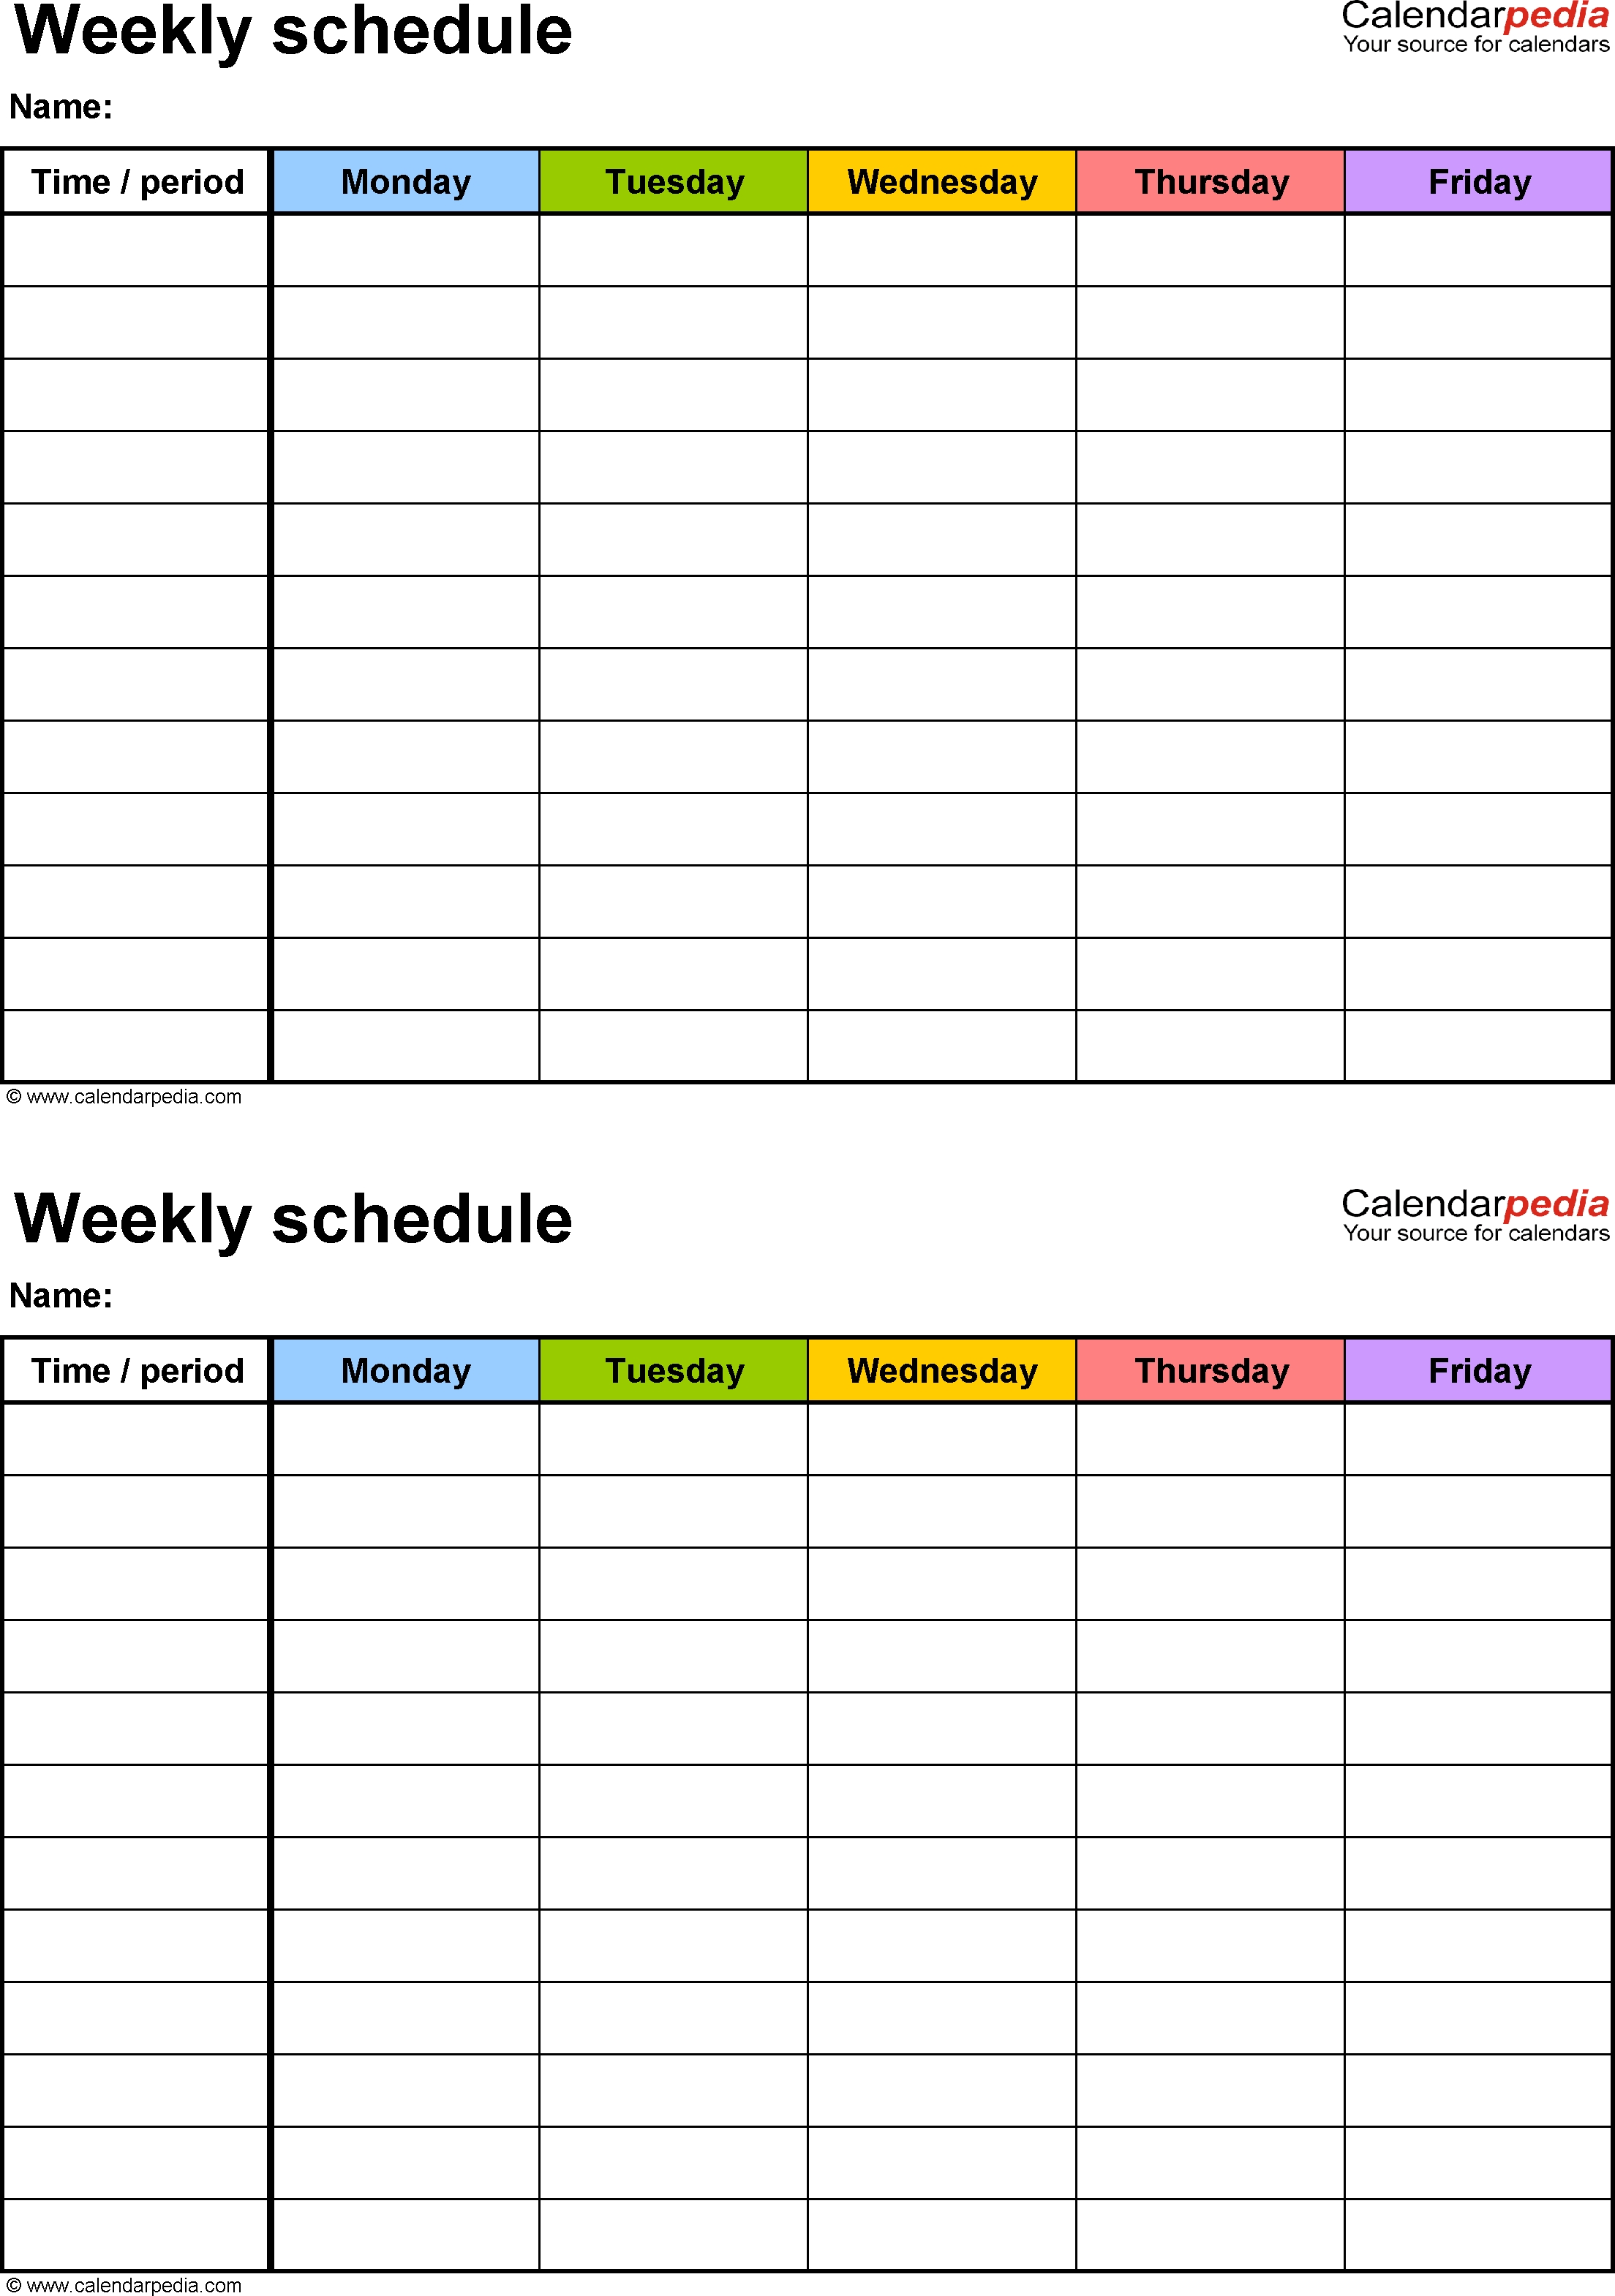 Free Weekly Schedule Templates For Word - 18 Templates throughout Printable Blank Weekly Employee Schedule